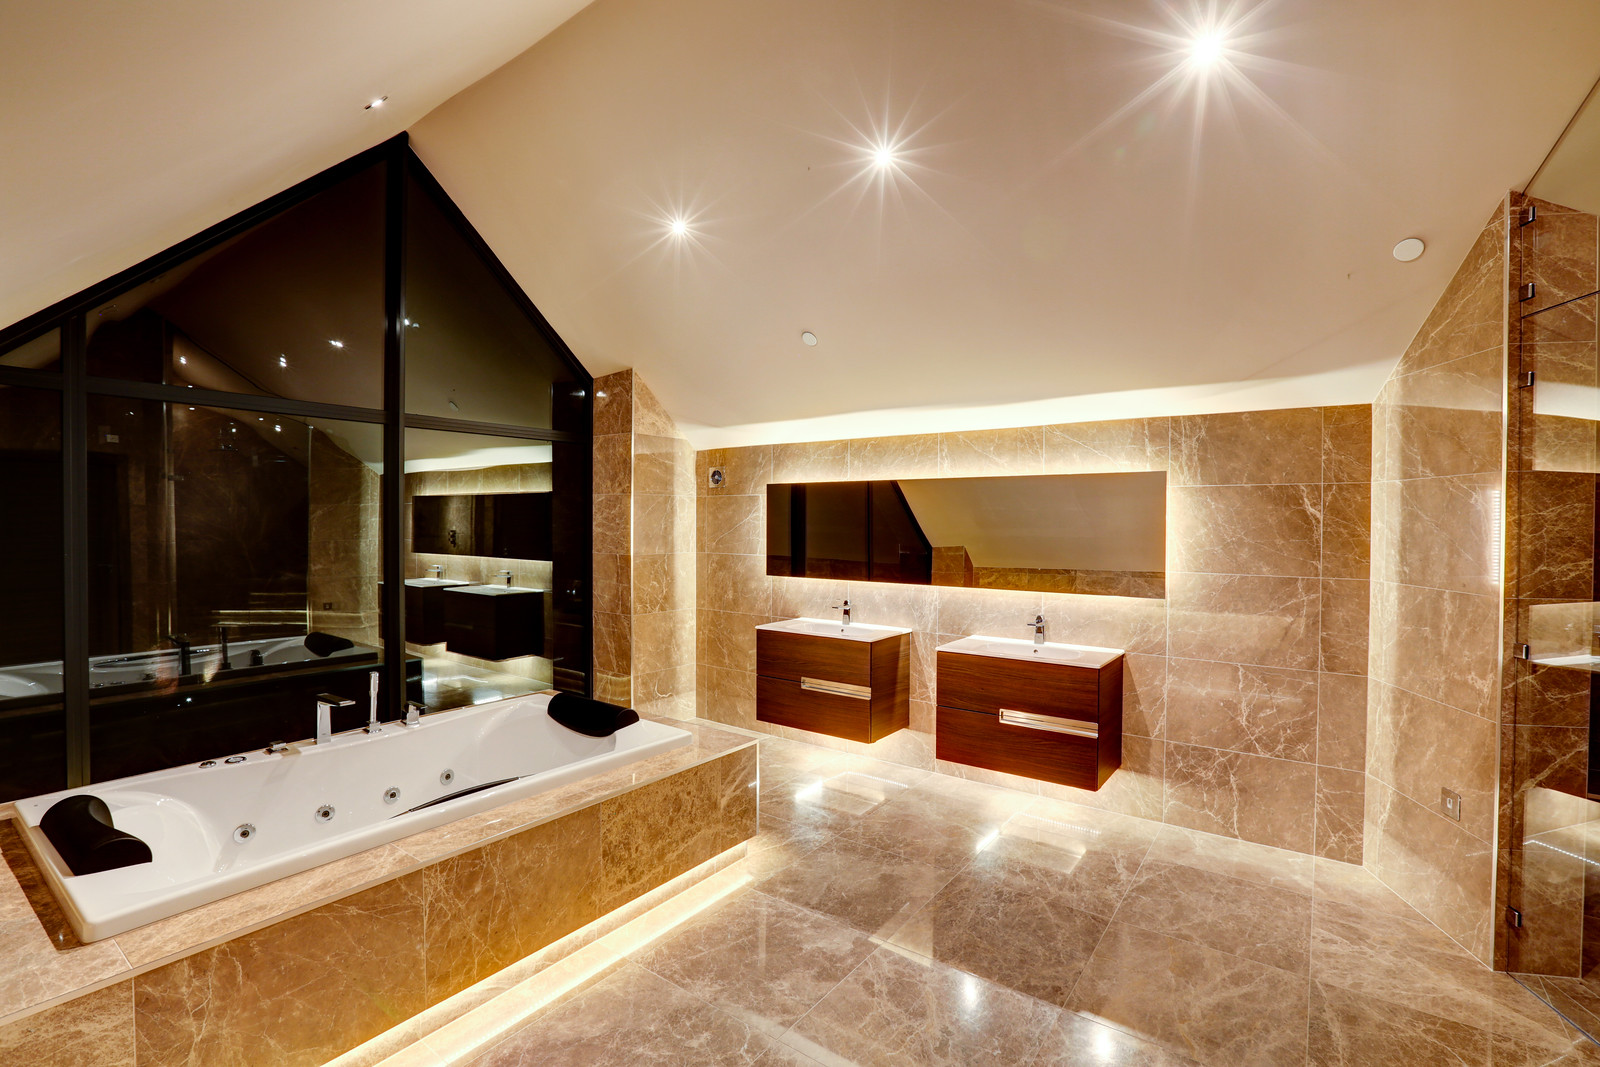 inset bath in luxurious bathroom, Tanglewood Nottinghamshire